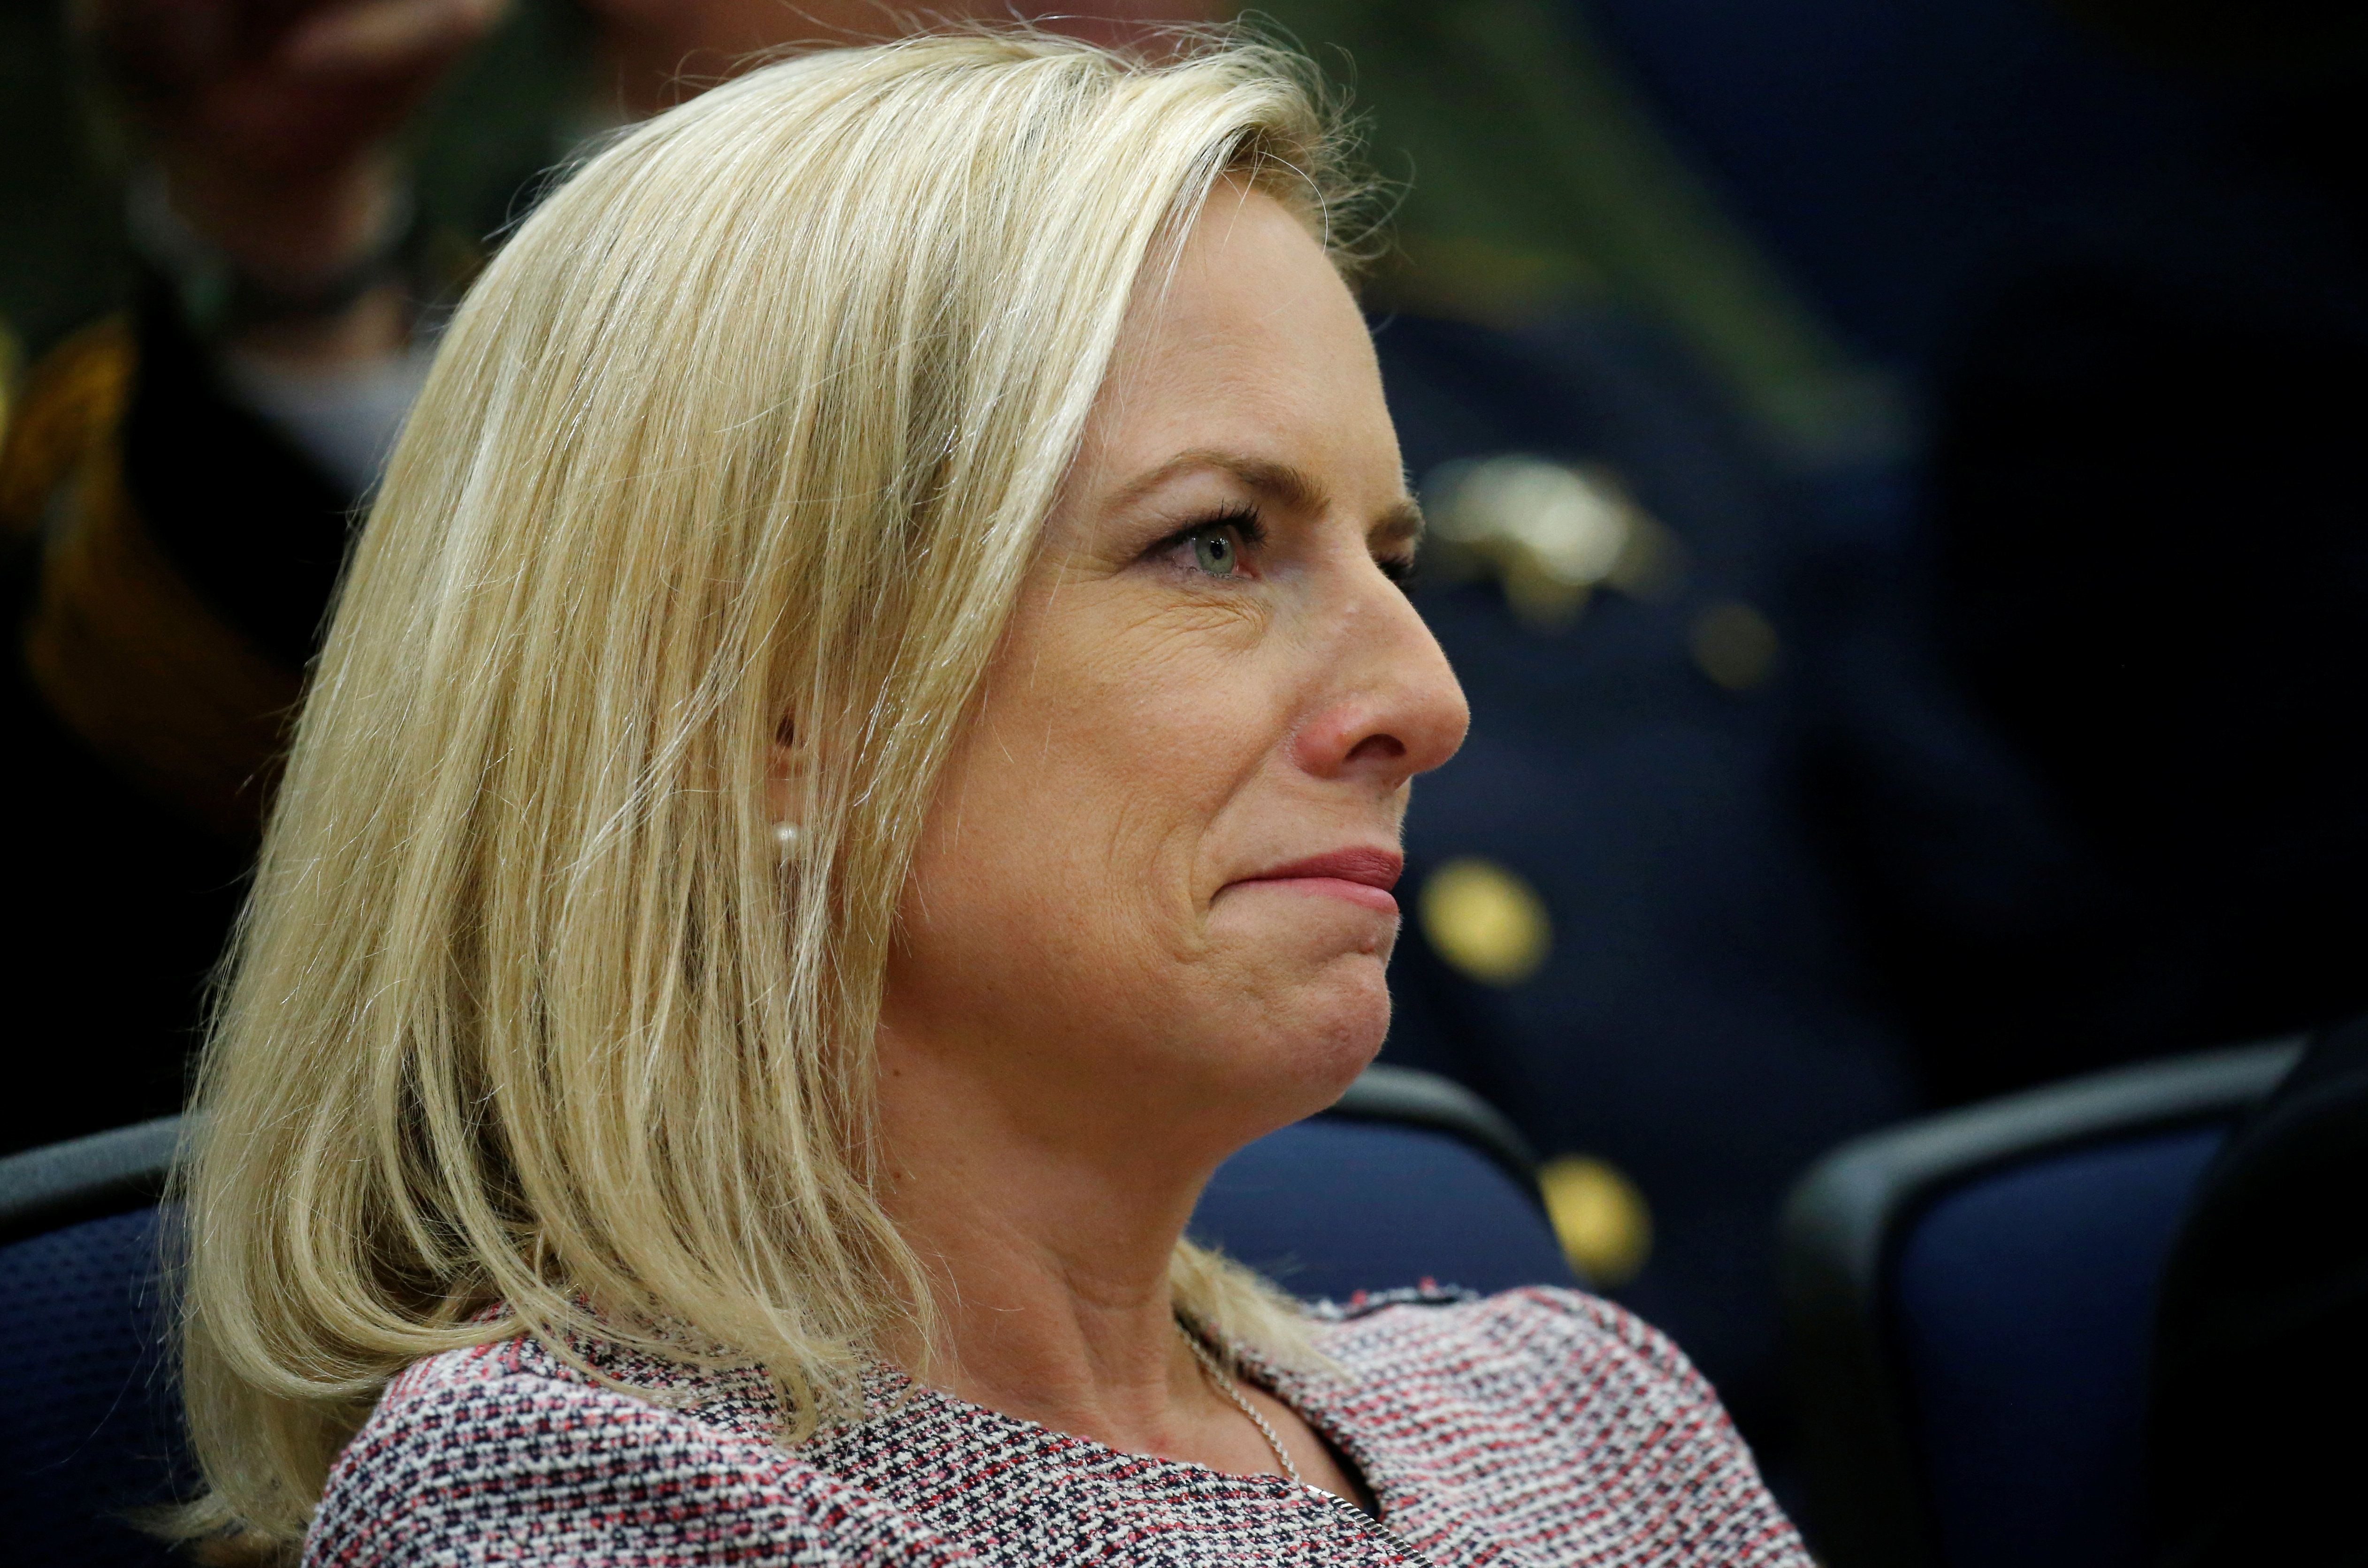 """DHS Secretary Kirstjen Nielsen listens to U.S. President Donald Trump speaking at an """"Angel Families"""" immigration event at the White House in Washington, U.S., June 22, 2018. REUTERS/Leah Millis"""